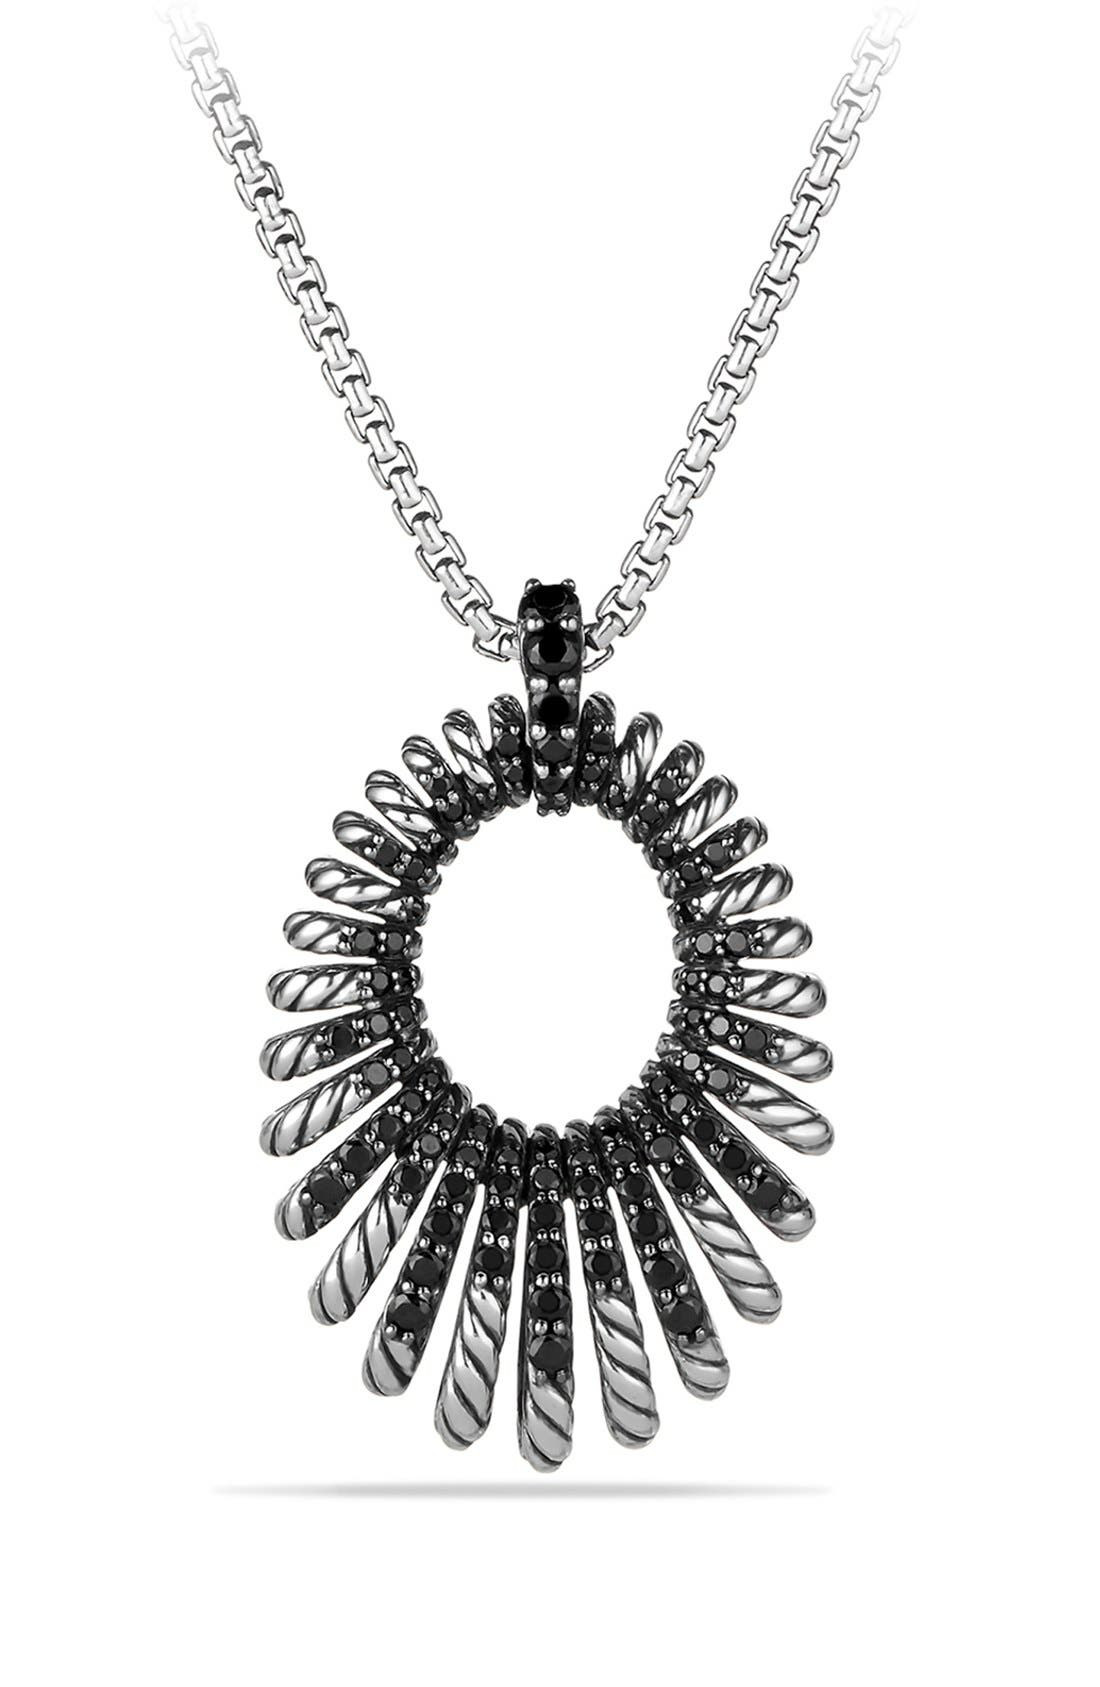 Main Image - David Yurman 'Tempo' Necklace with Black Spinel